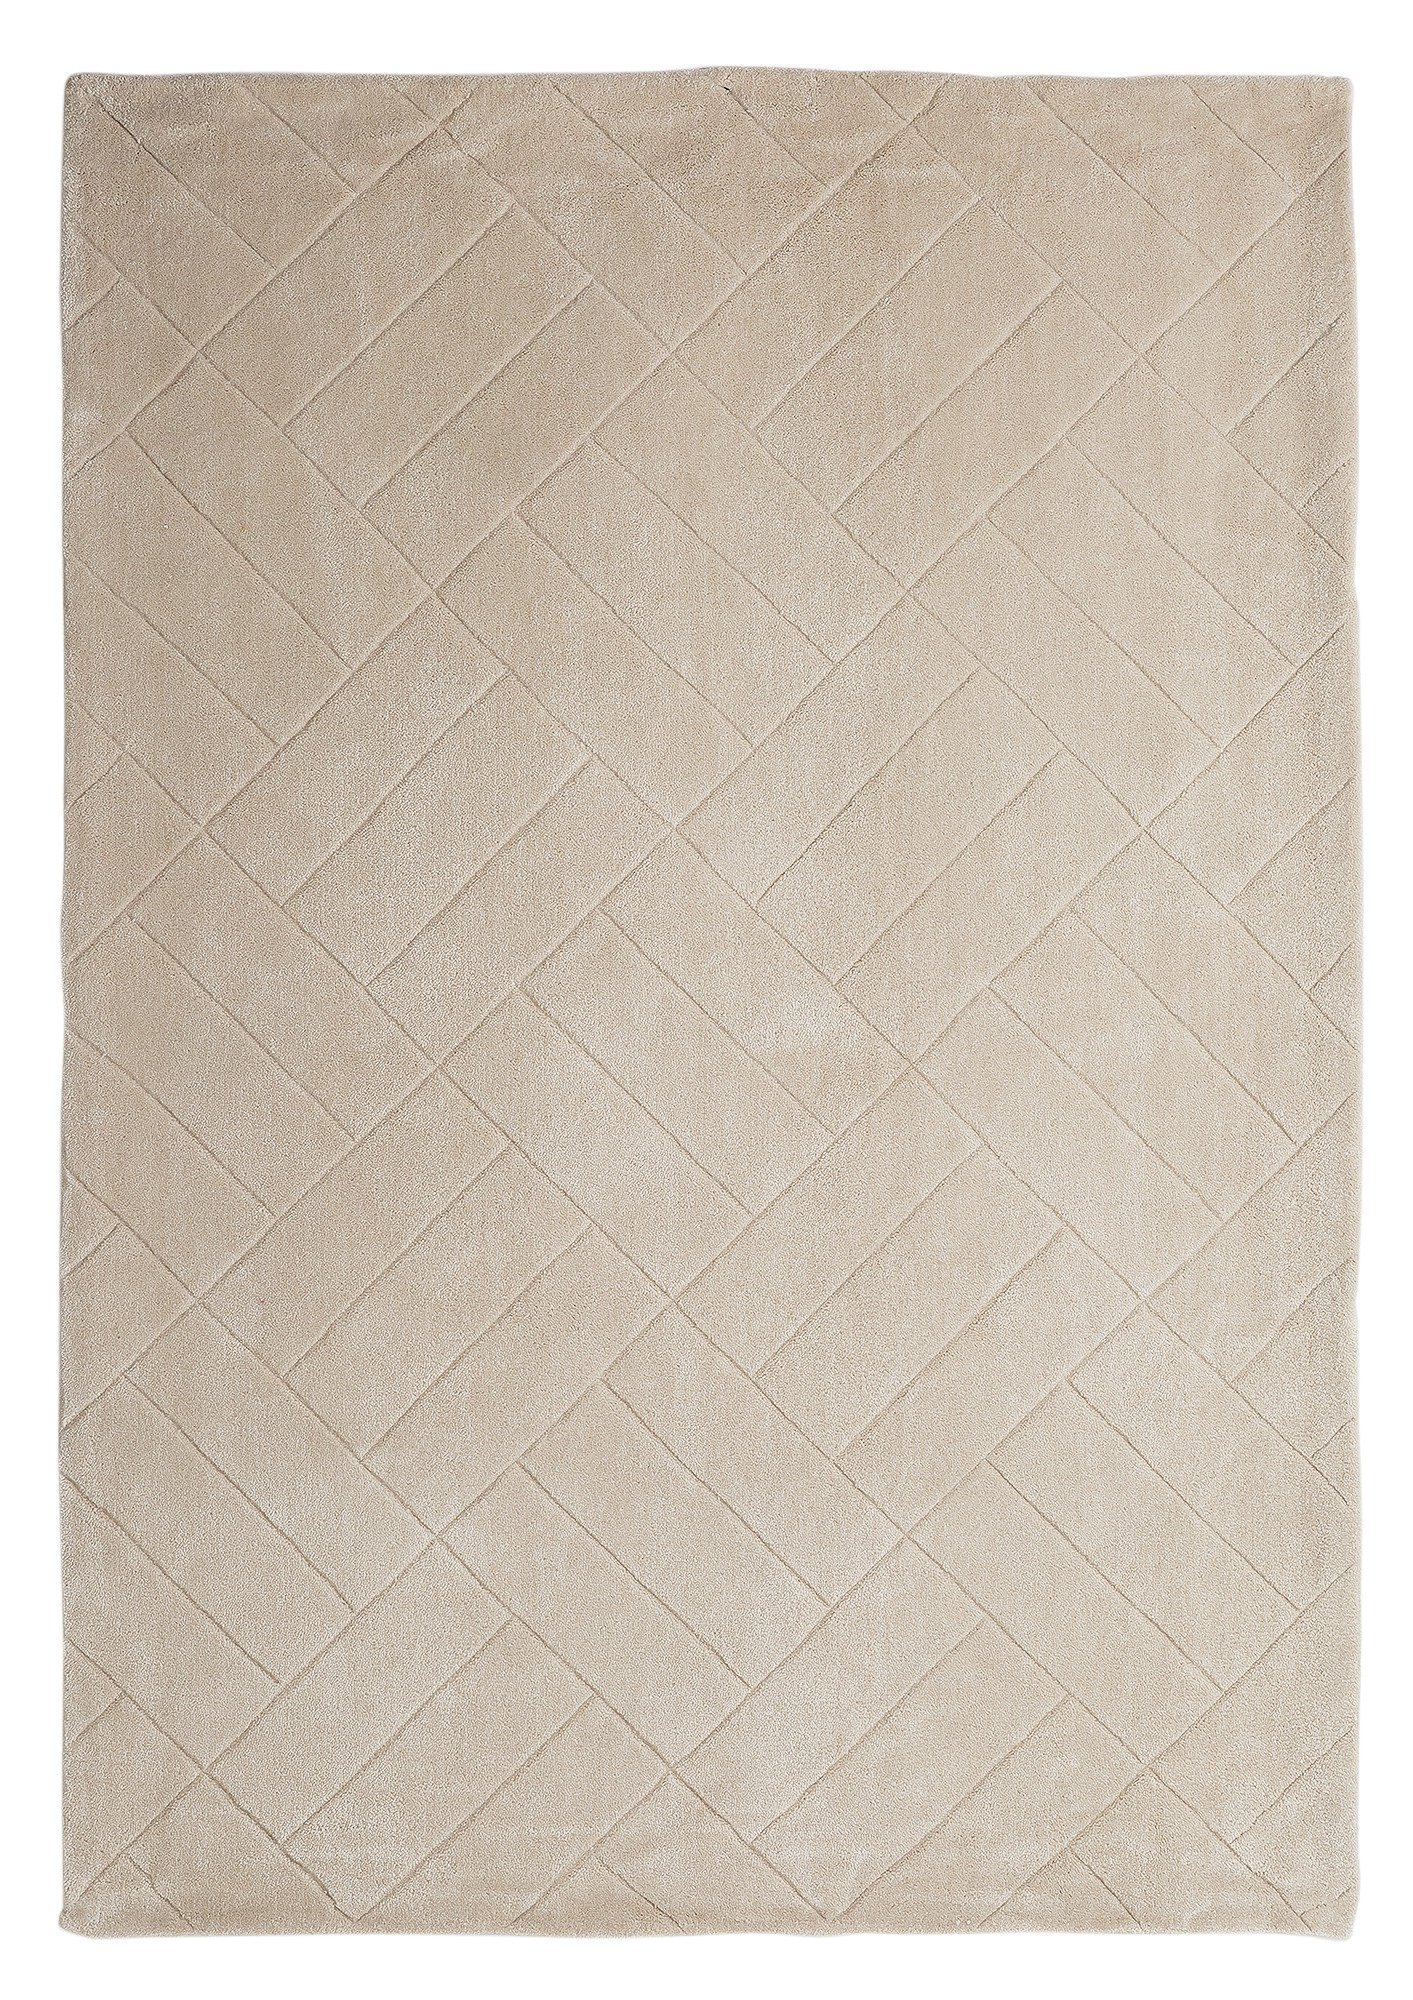 Collection Parker Rug - 120x170cm - Cream